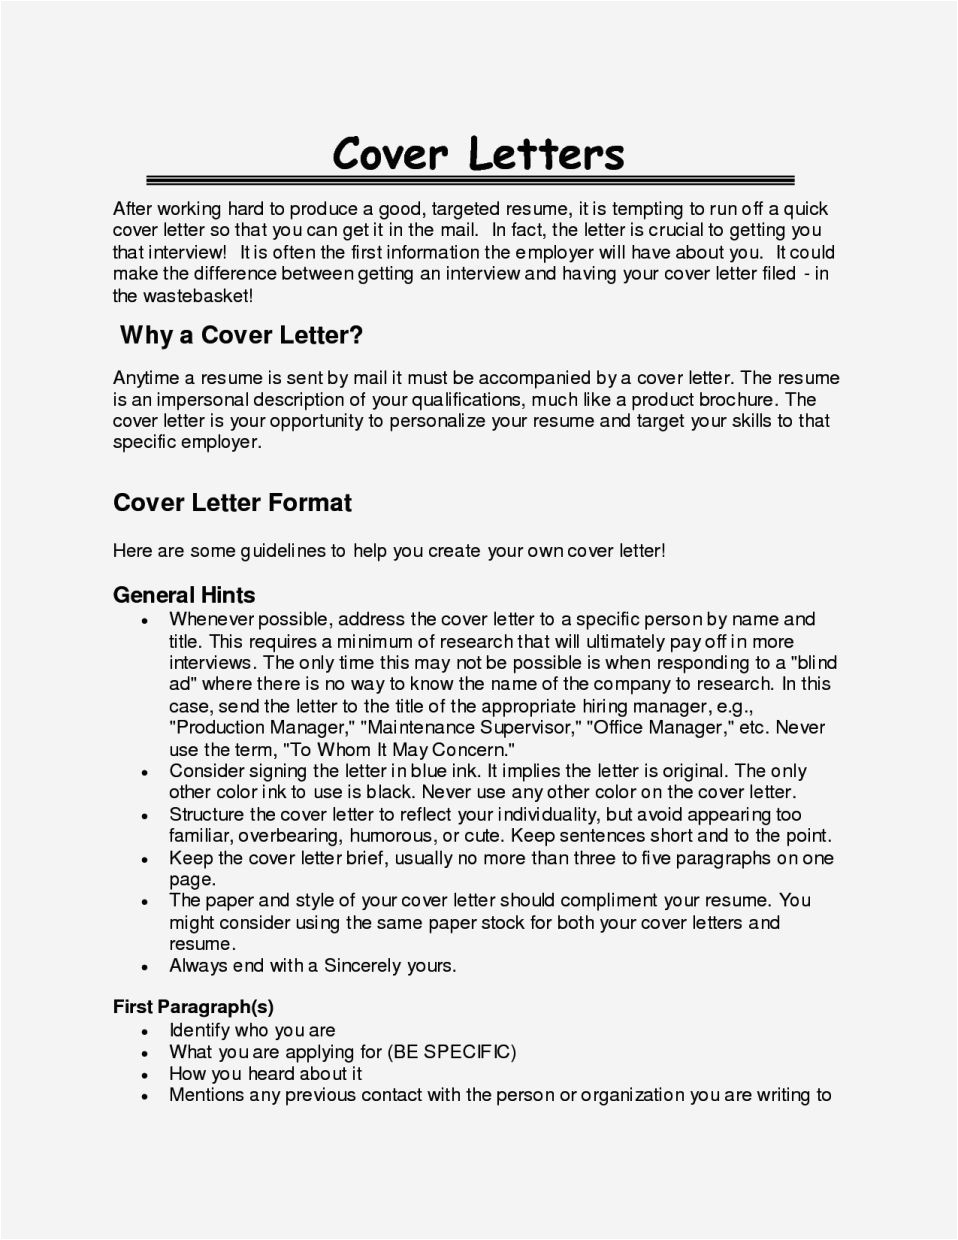 Good Opening Lines for Cover Letters Cover Letter Opening Sentence Resume Template Cover